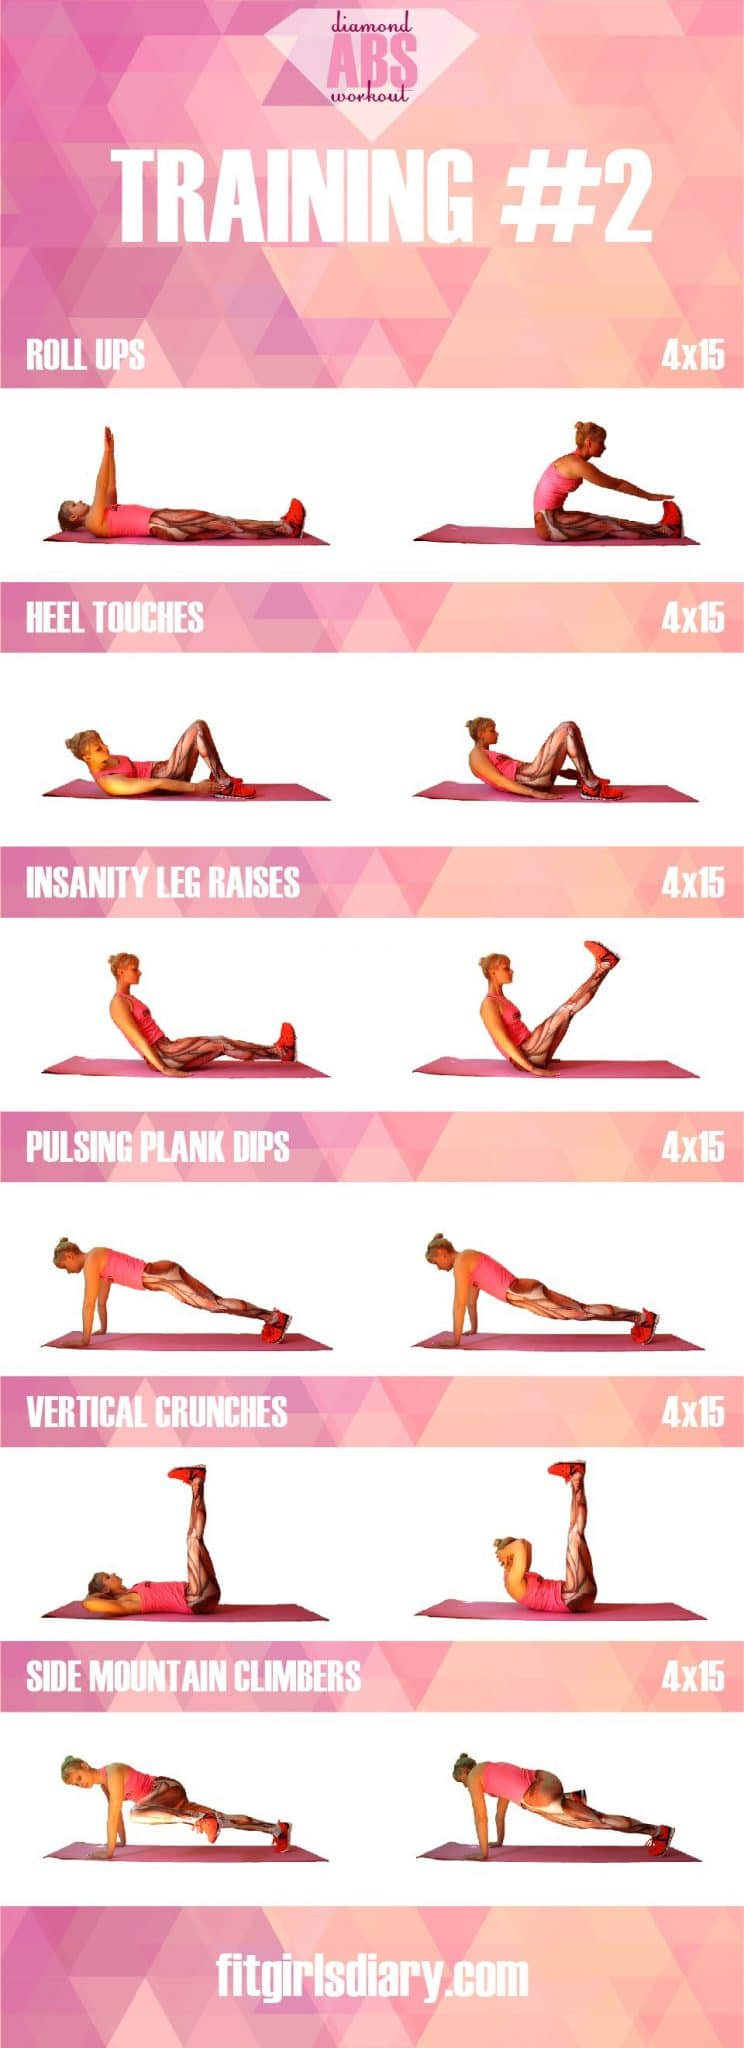 Training 2 Diamond Abs Workout